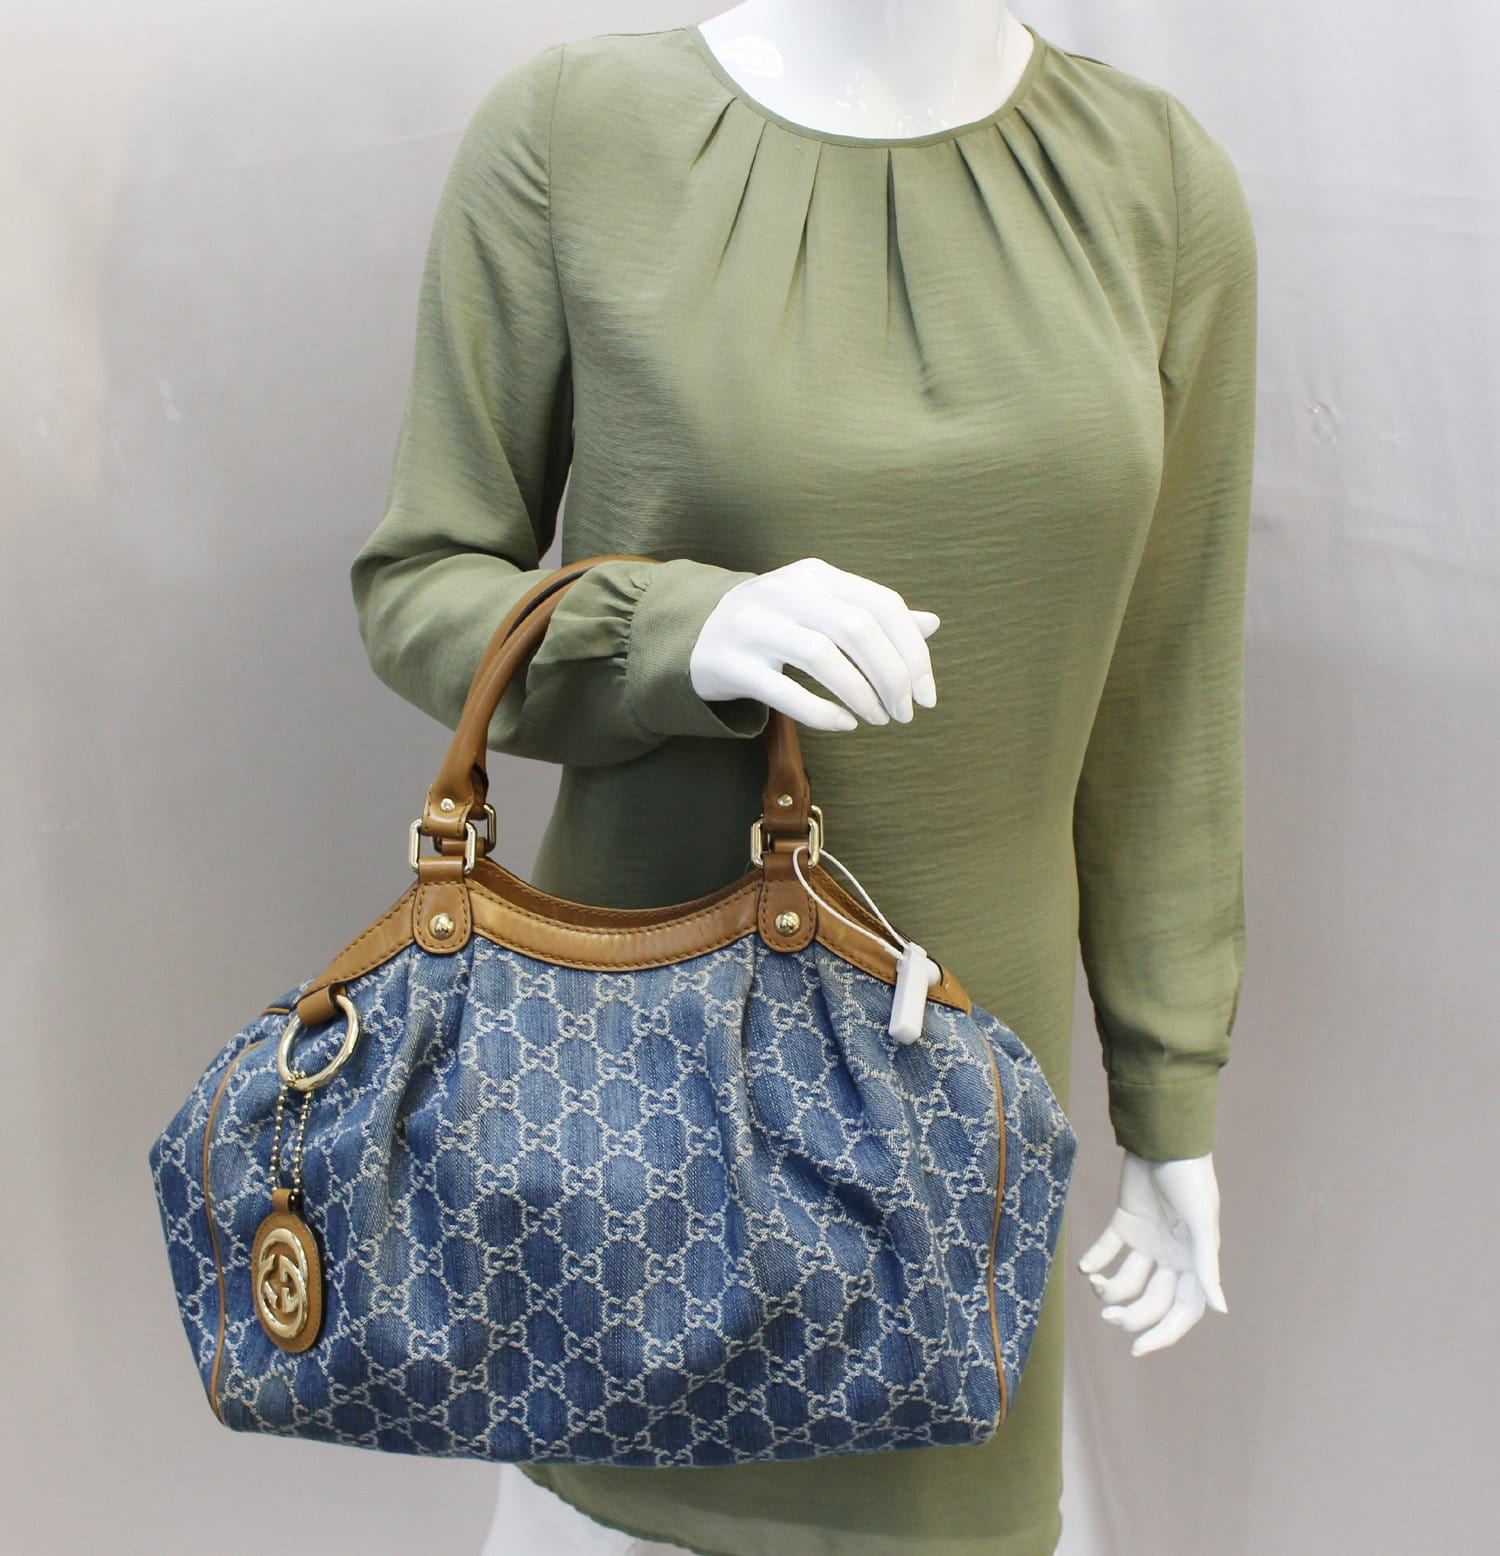 987b3a11792d Authentic GUCCI GG Blue Denim Sukey Tote Shoulder Bag Gucci Sukey 2119